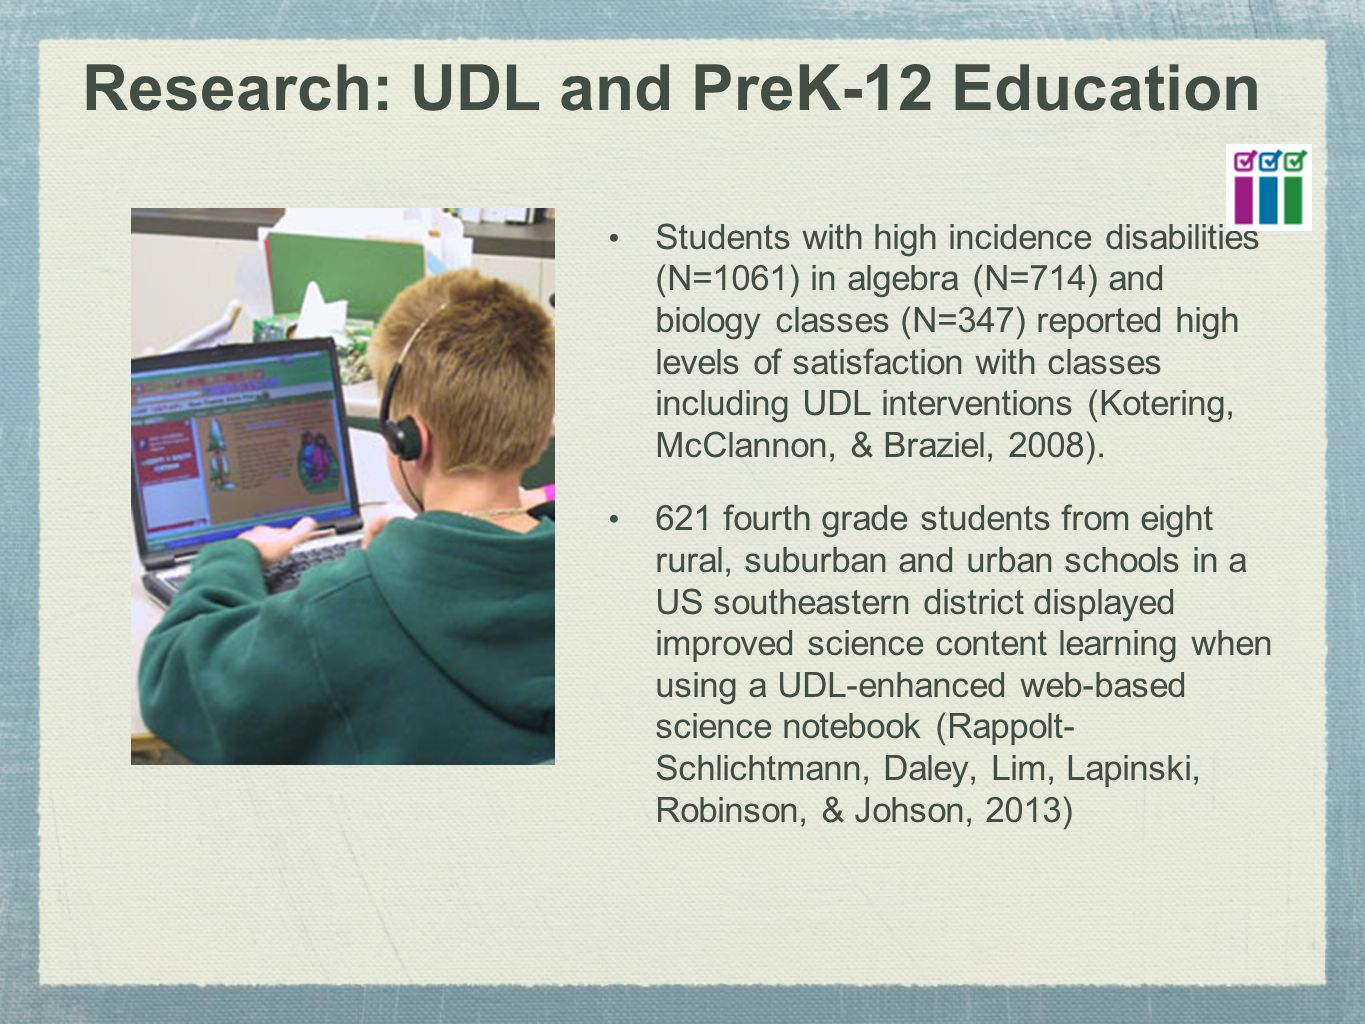 Research: UDL and PreK-12 Education Students with high incidence disabilities (N=1061) in algebra (N=714) and biology classes (N=347) reported high levels of satisfaction with classes including UDL interventions (Kotering, McClannon, & Braziel, 2008).